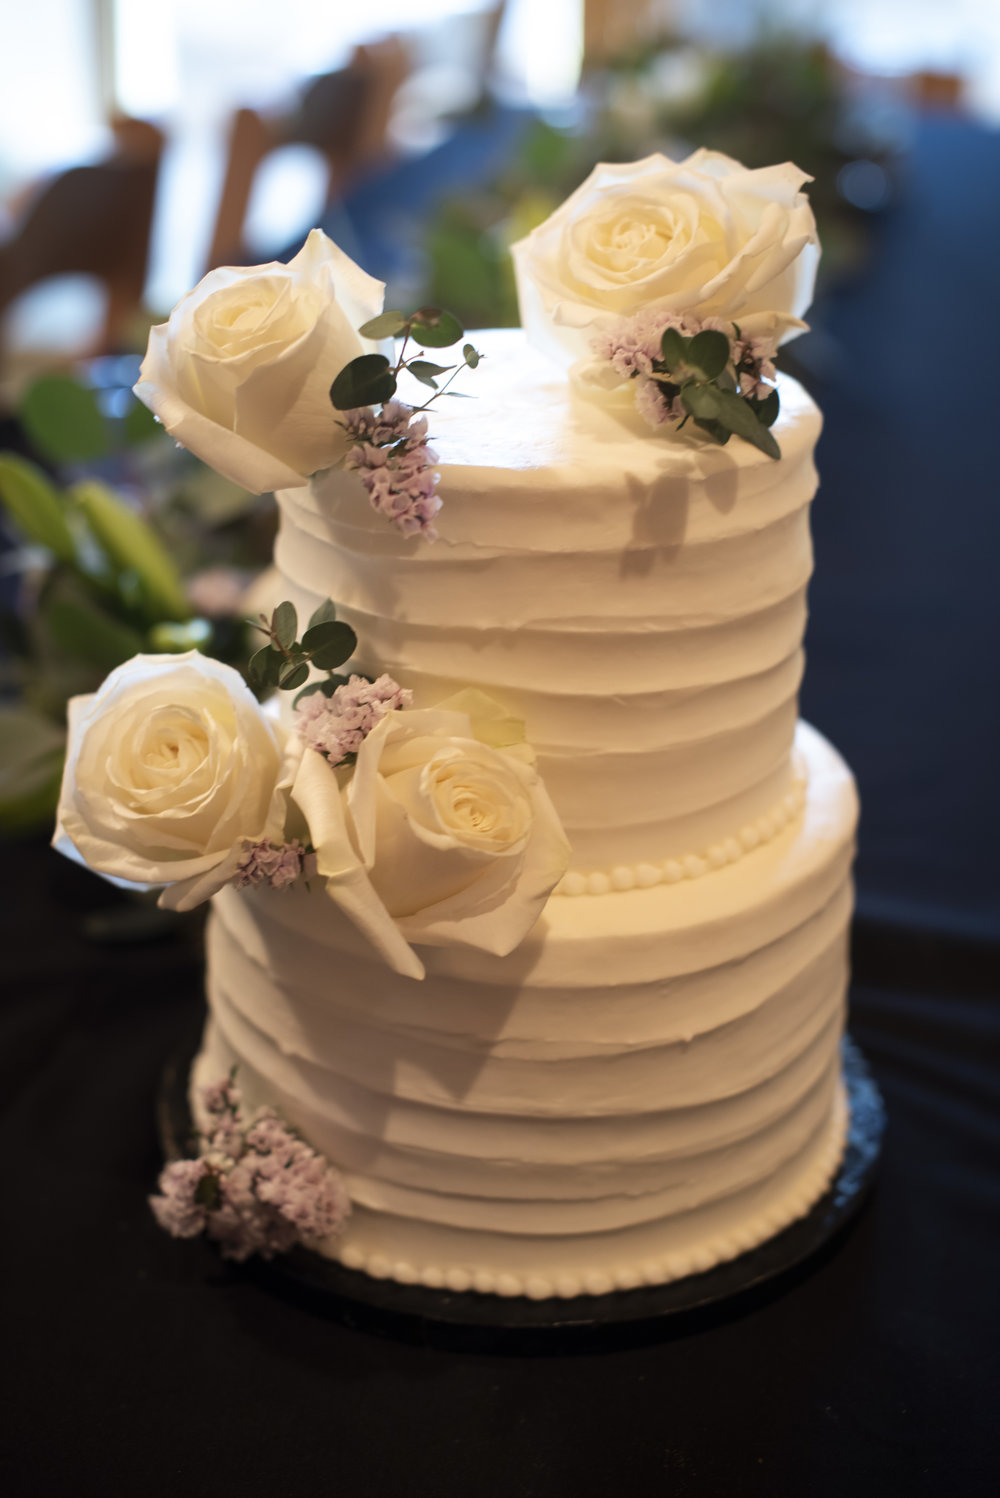 Simple Cake Flowers by Bend Floral Artistry. Sunriver Oregon private residence. Photo by:  WildTeacup.com  Jennifer Whelan